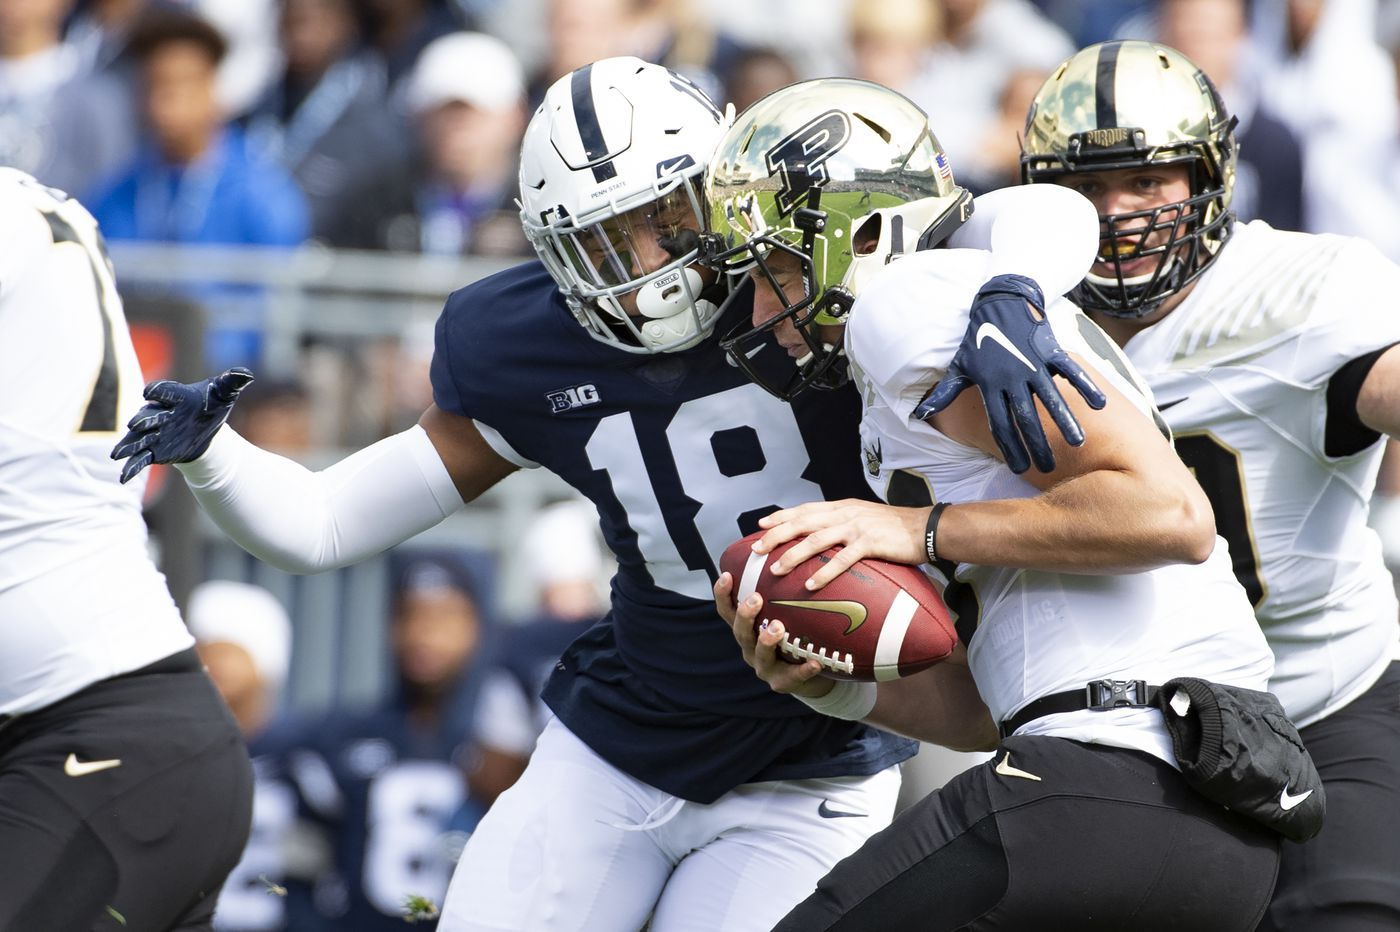 Penn State at Iowa: Five Things to Watch